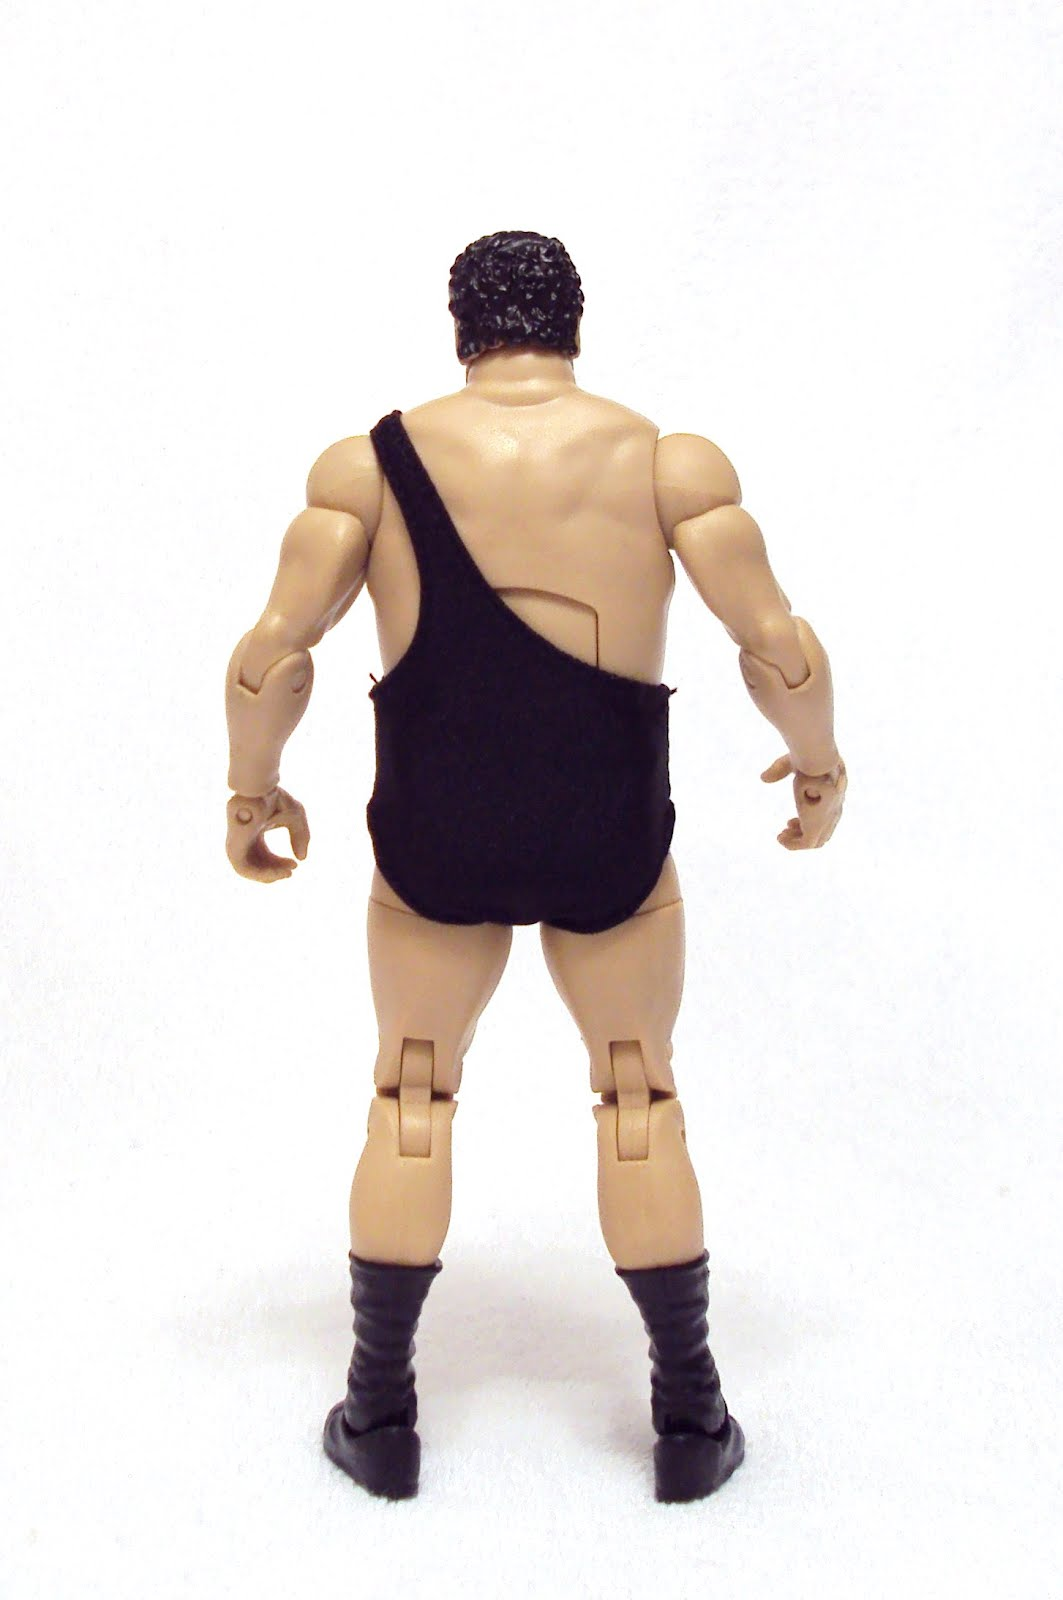 3B's Toy Hive: WWE Legends, Andre the Giant - Review